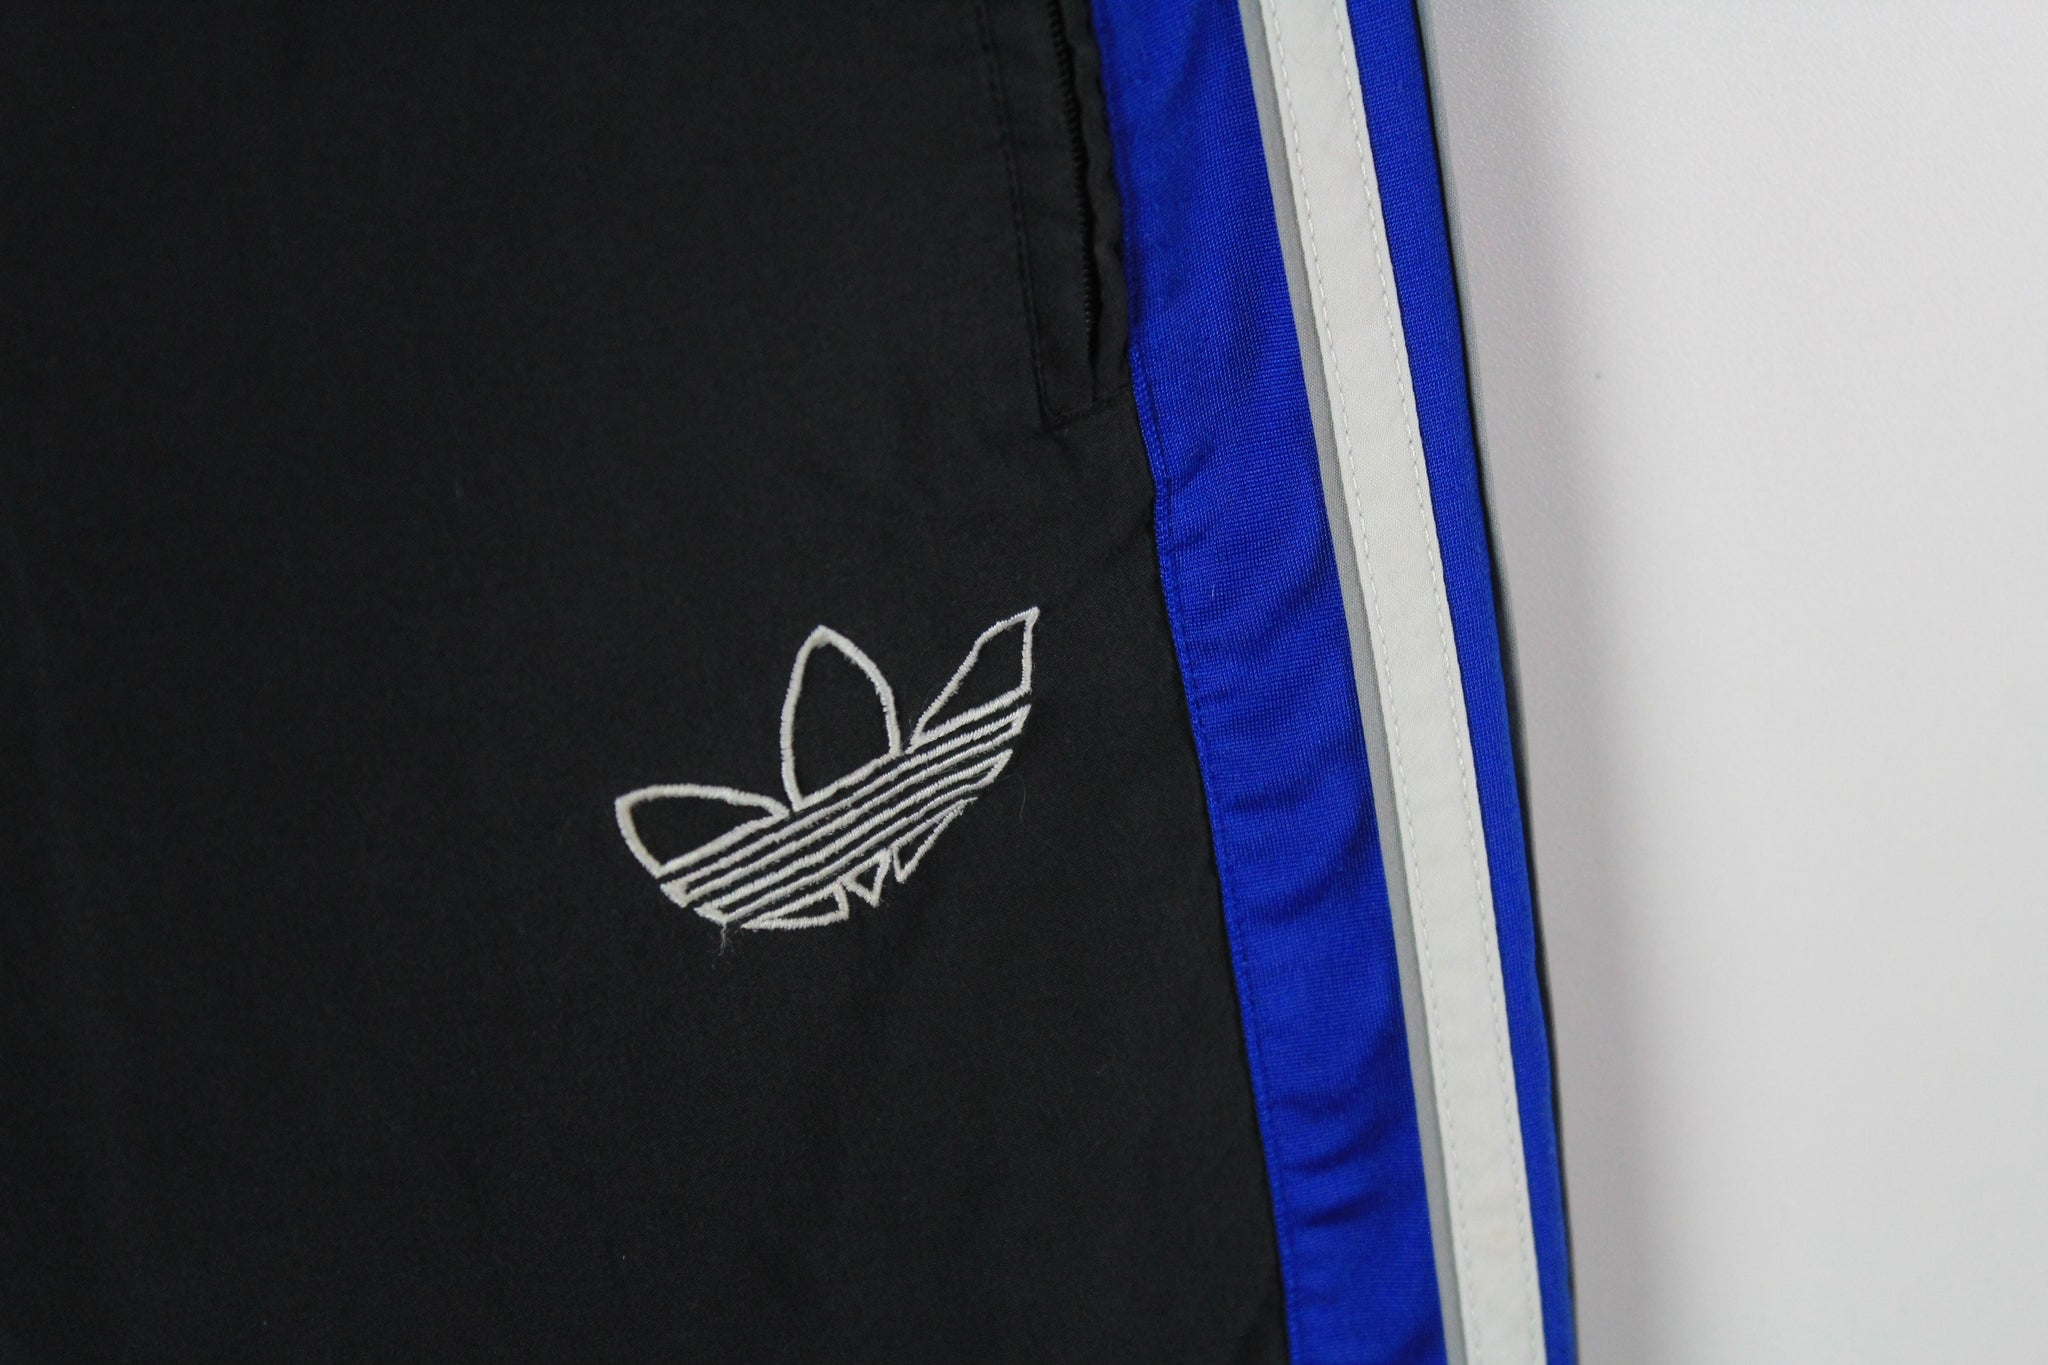 Vintage Adidas Tracksuit Medium / Large